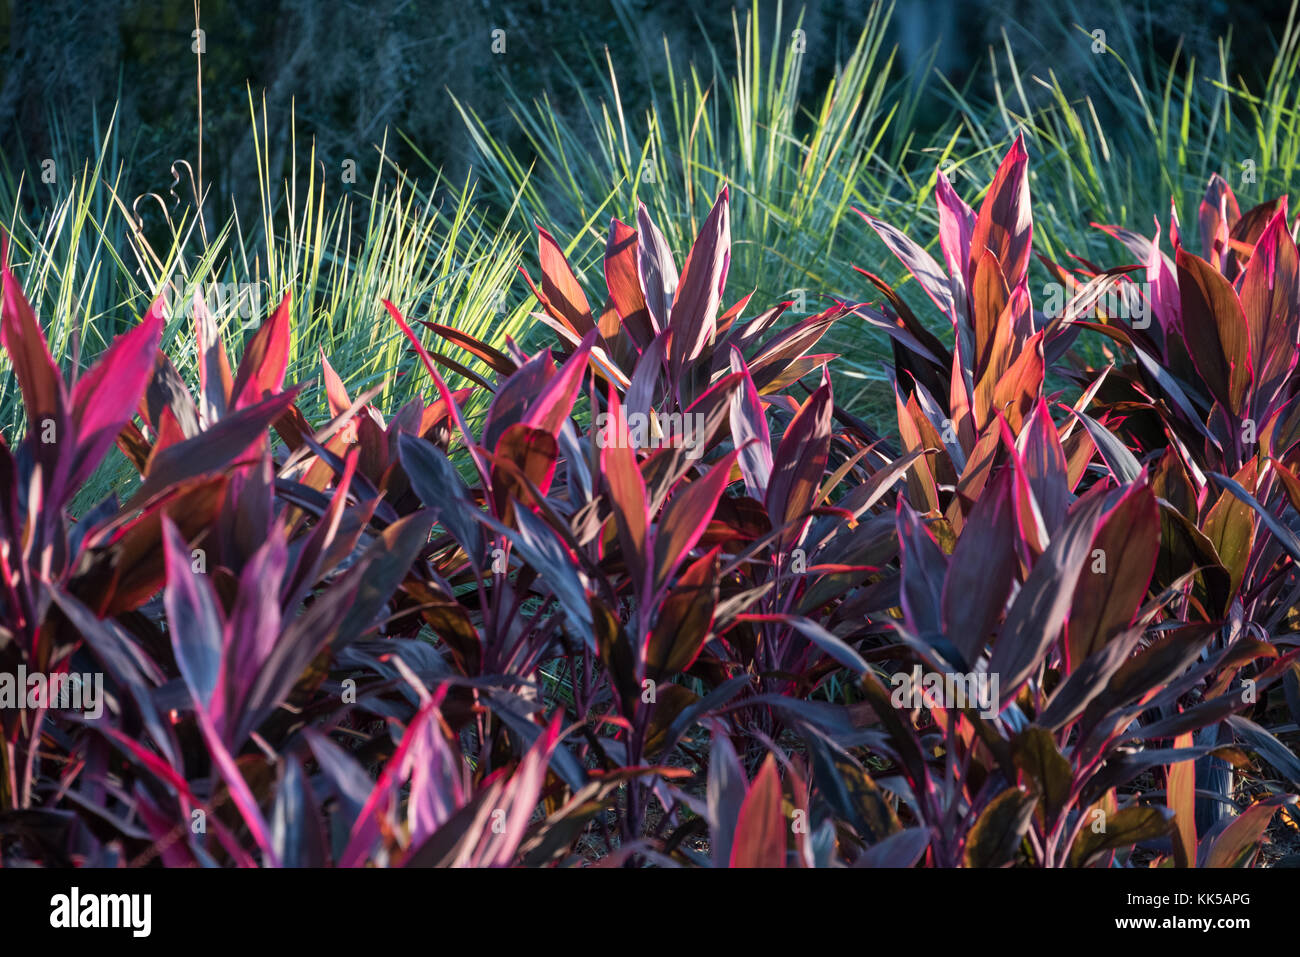 Sunlit Florida landscaping at Sawgrass Players Club in Ponte Vedra Beach, Florida. (USA) - Stock Image